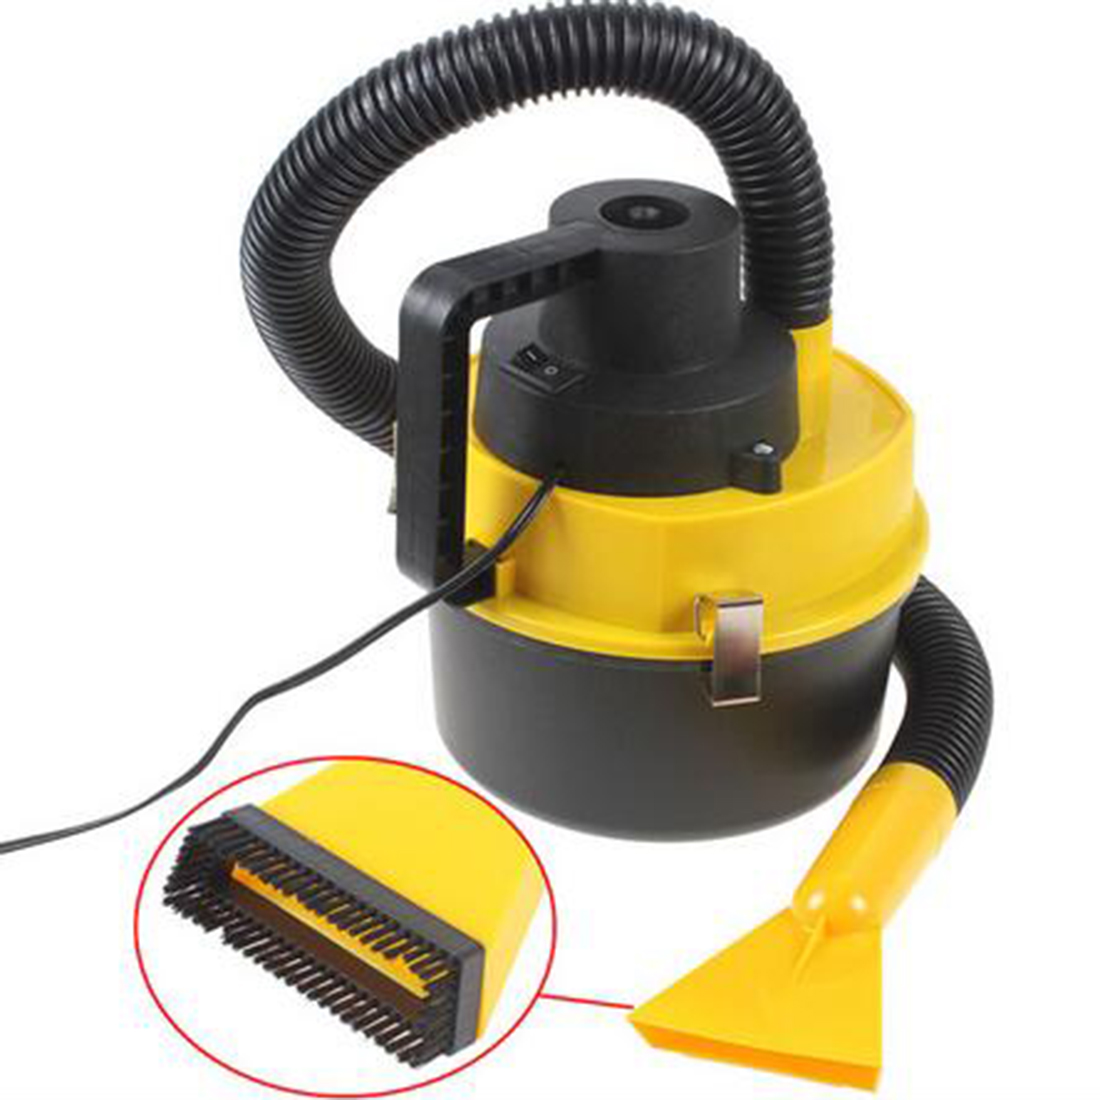 2016 Dc12V High Power Wet And Dry Portable Handheld Car Vacuum Cleaner Washer Car Mini Dust Vacuum Cleaner(China (Mainland))